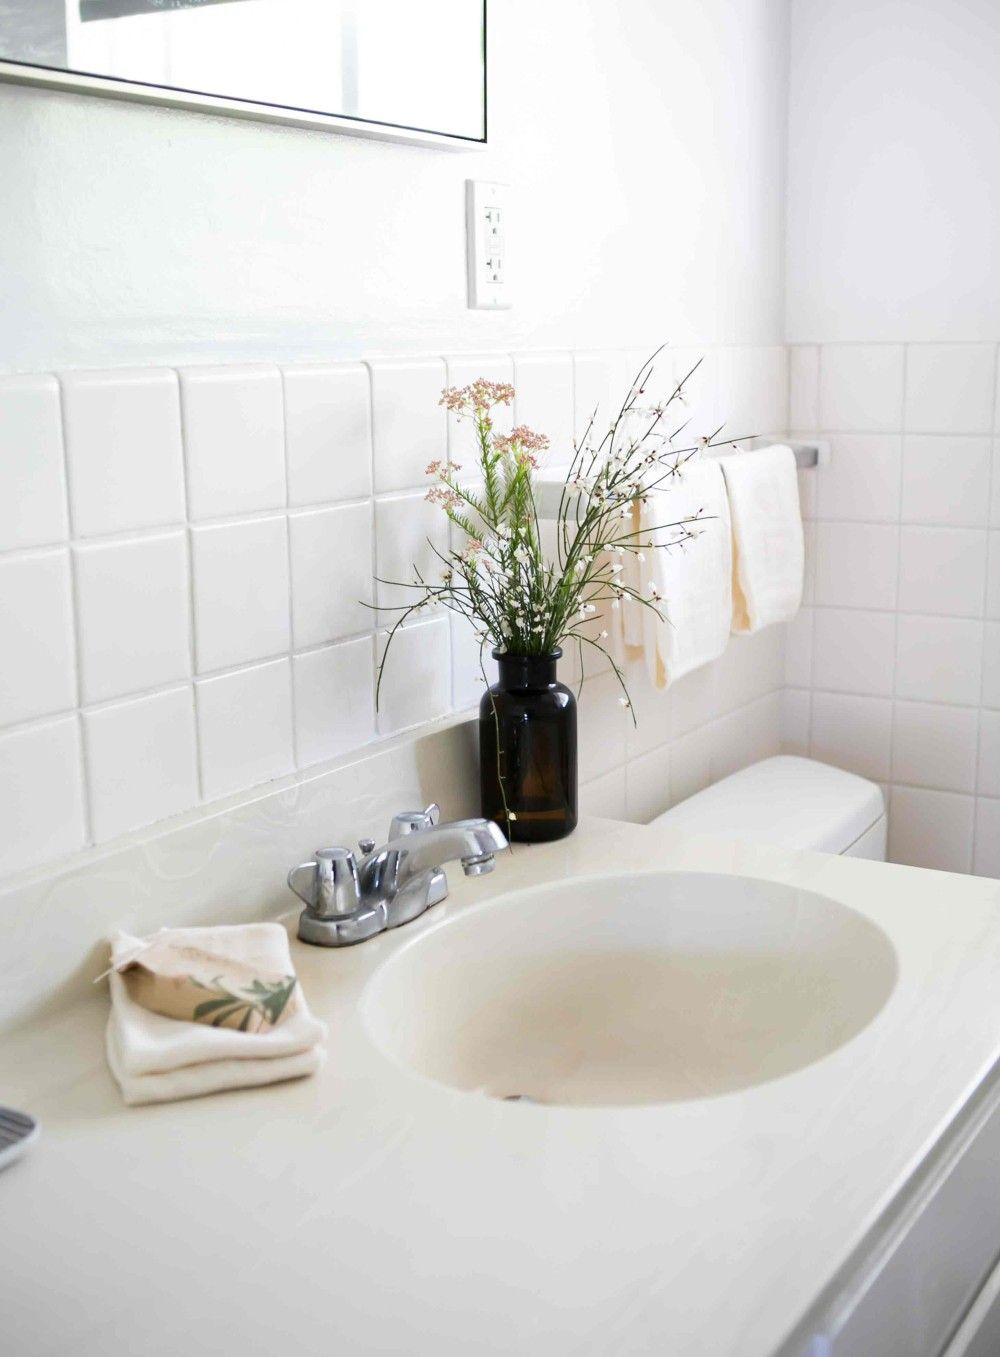 Design Sponge Bathrooms A Young Family's Happy Goldenstate Home  Design*sponge  Water